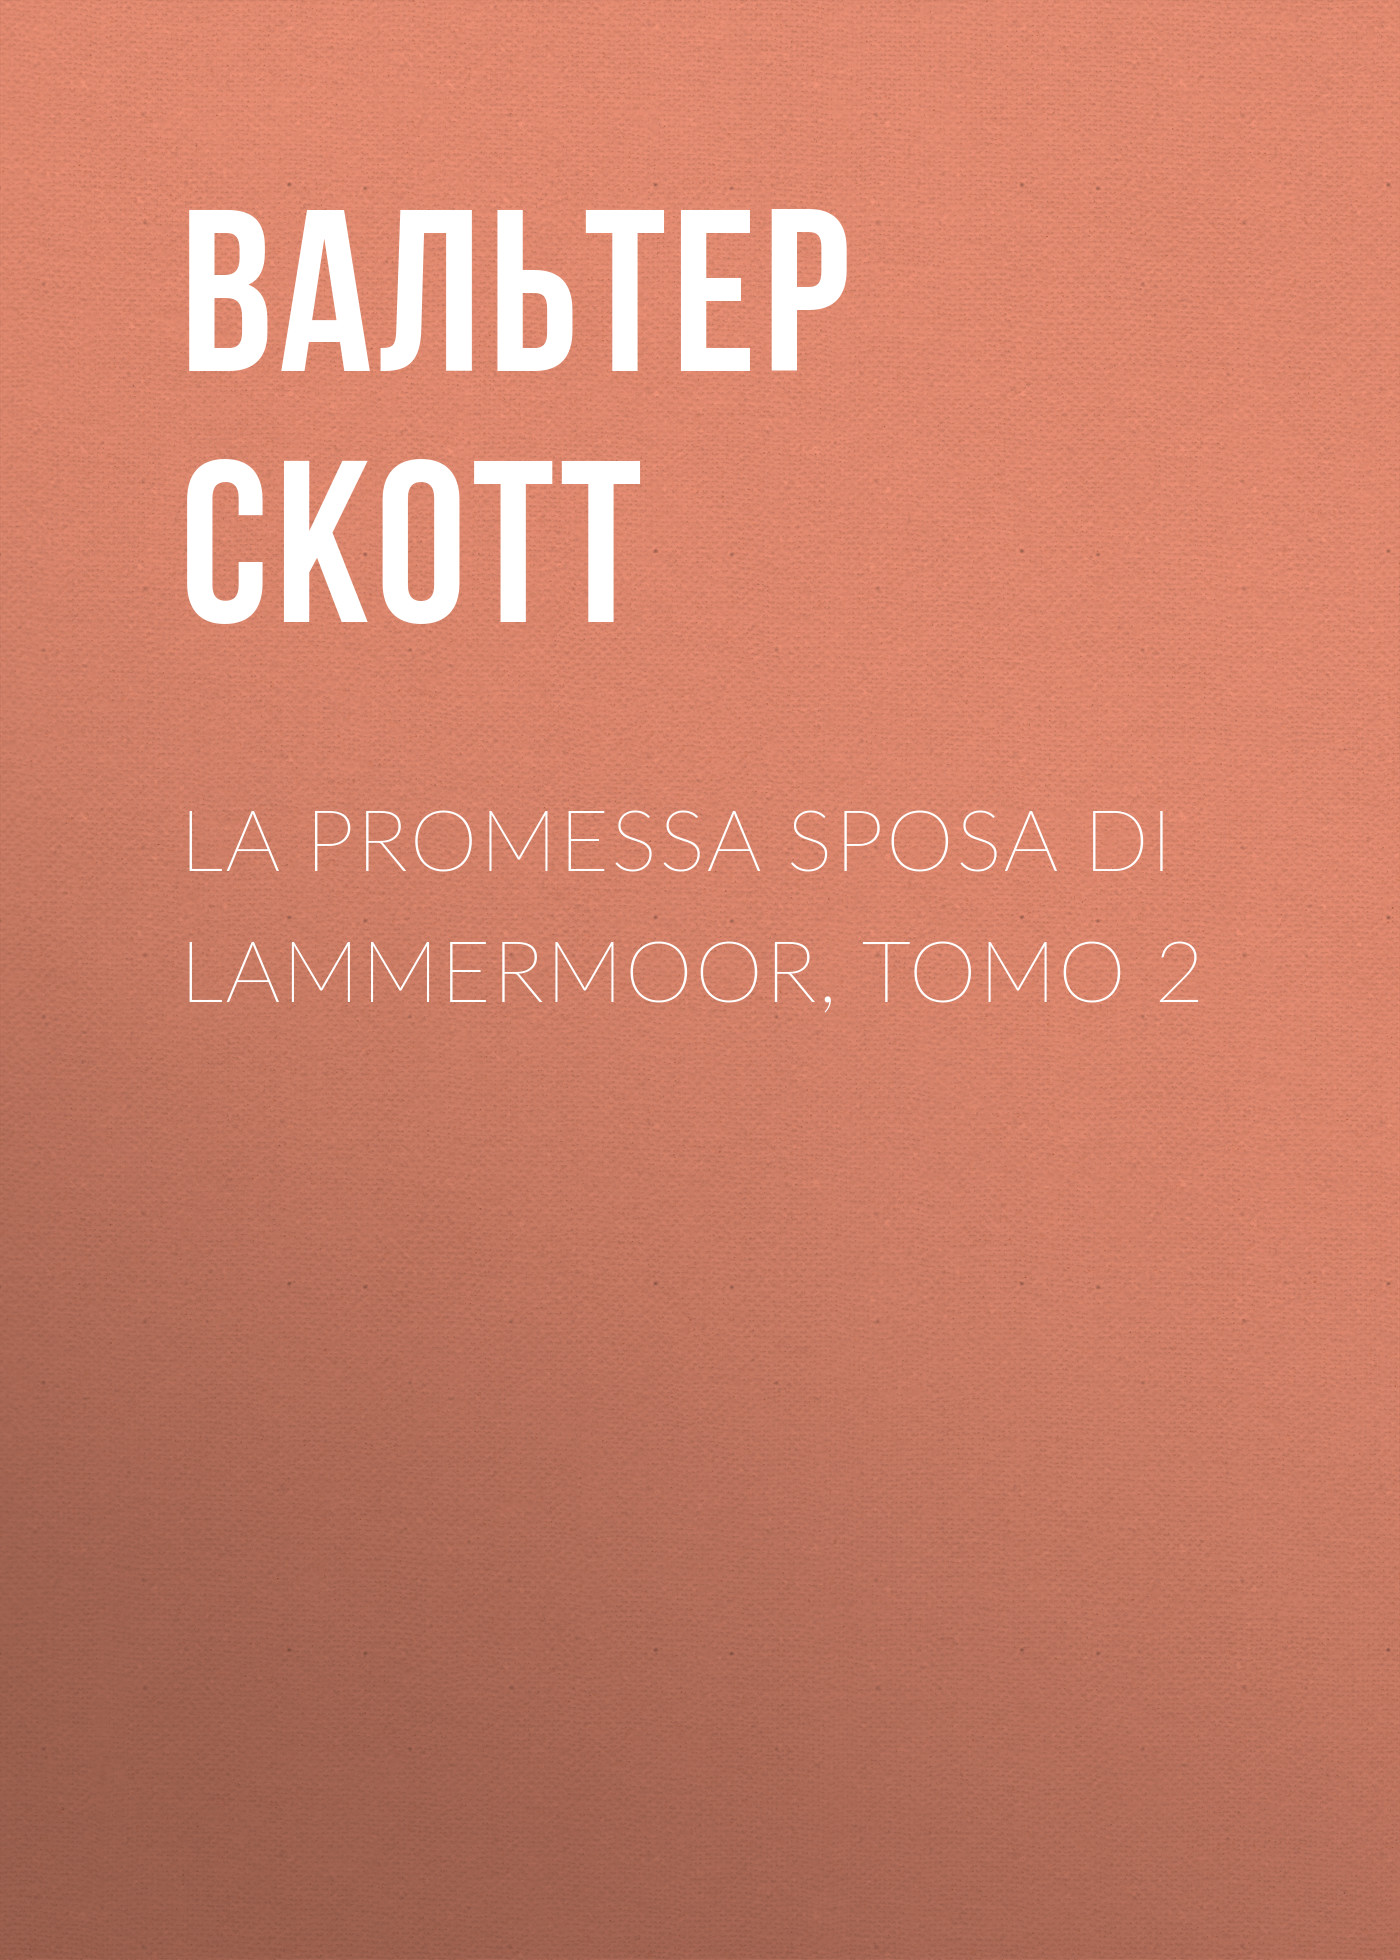 Вальтер Скотт La promessa sposa di Lammermoor, Tomo 2 вальтер скотт the bride of lammermoor